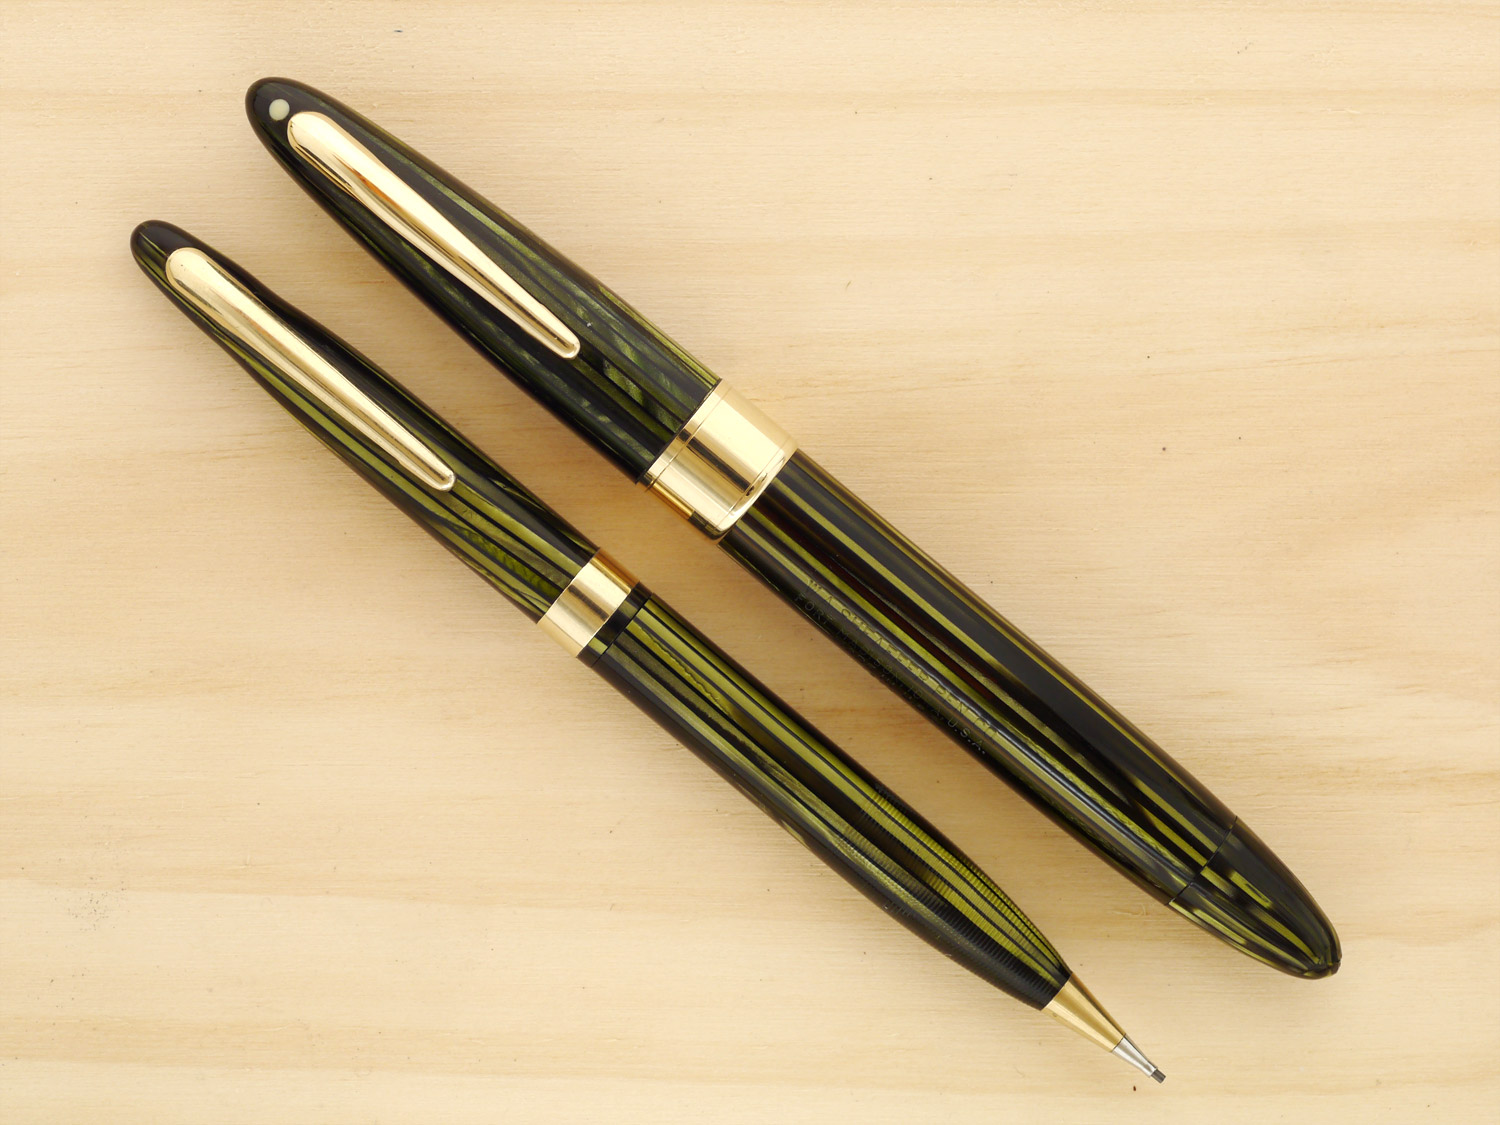 Sheaffer Triumph Valiant Pen and Pencil Set in Striated Marine Green